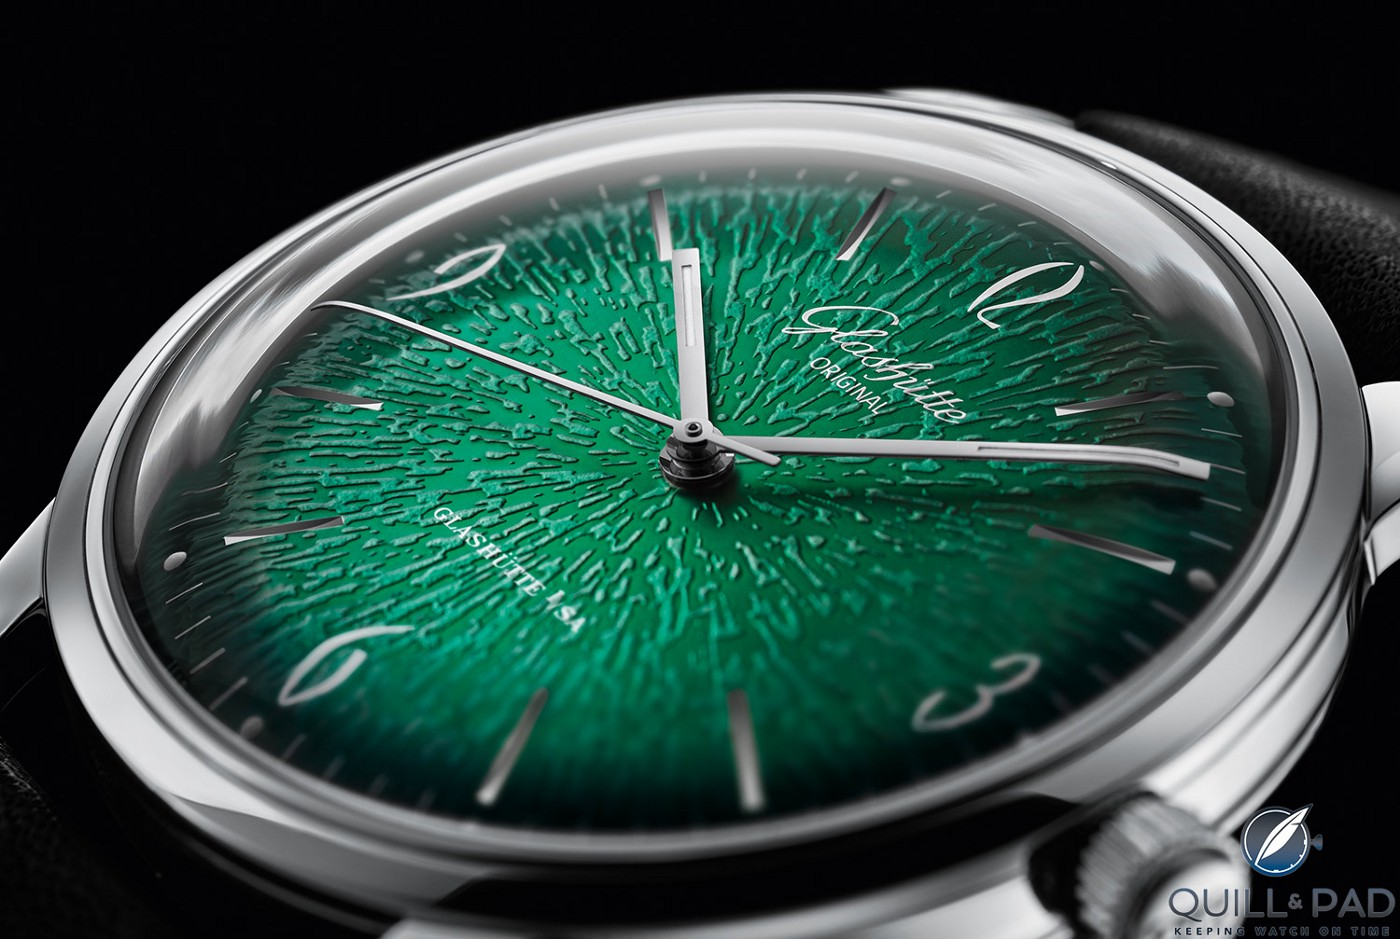 Close up look at the dial of the Glashütte Original Sixties Green